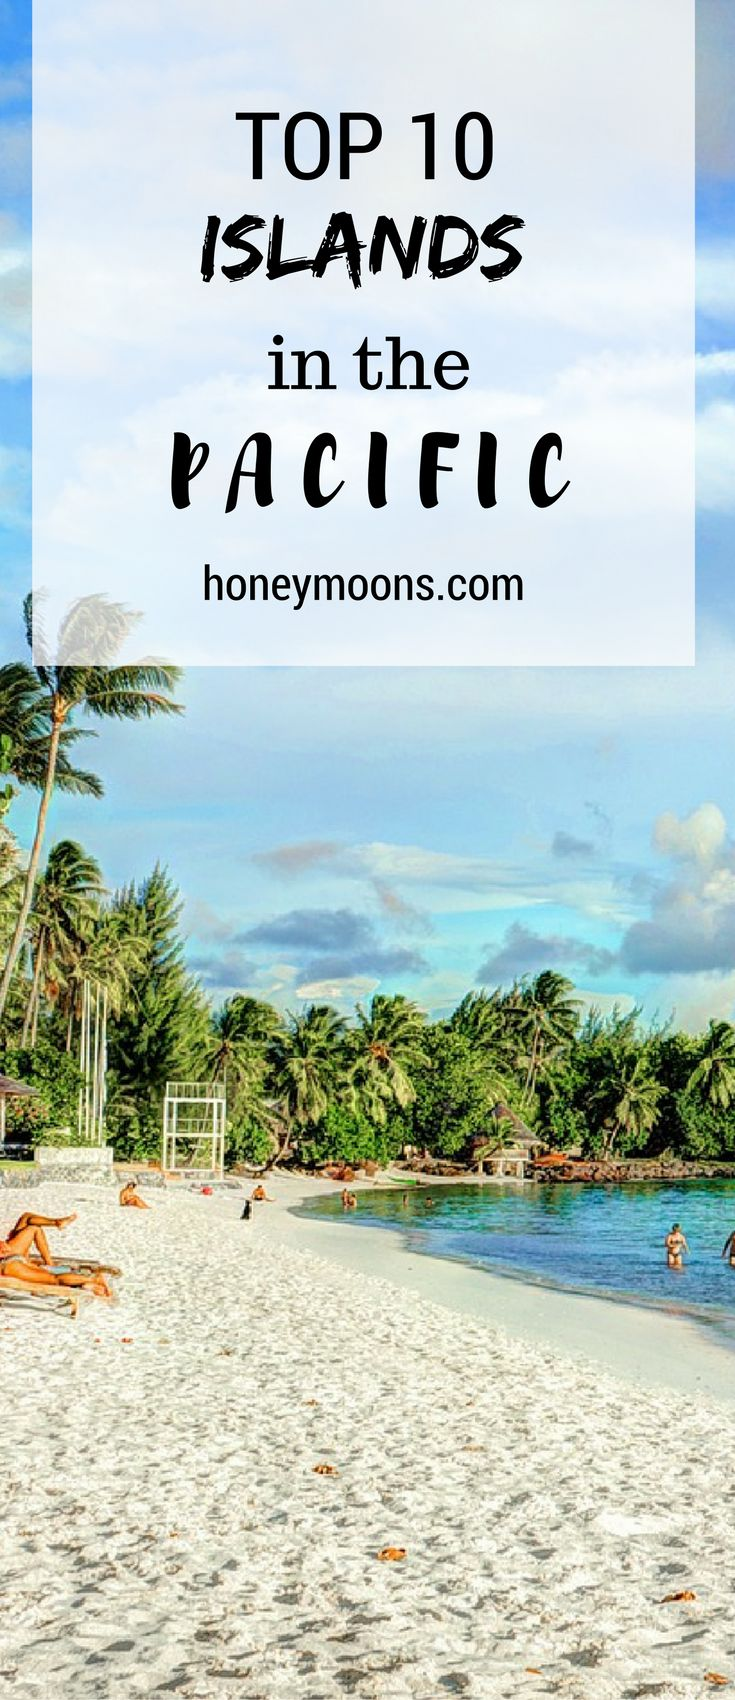 """Once you've said your """"I dos"""", and shaken your relatives' hands, hop on a plane and head to a remote island in the Pacific. Whether you're looking for an adventure or a relaxed romantic getaway, you and your partner are bound to have the time of your life. Click through to find out the top 10 honeymoon islands in the Pacific!"""